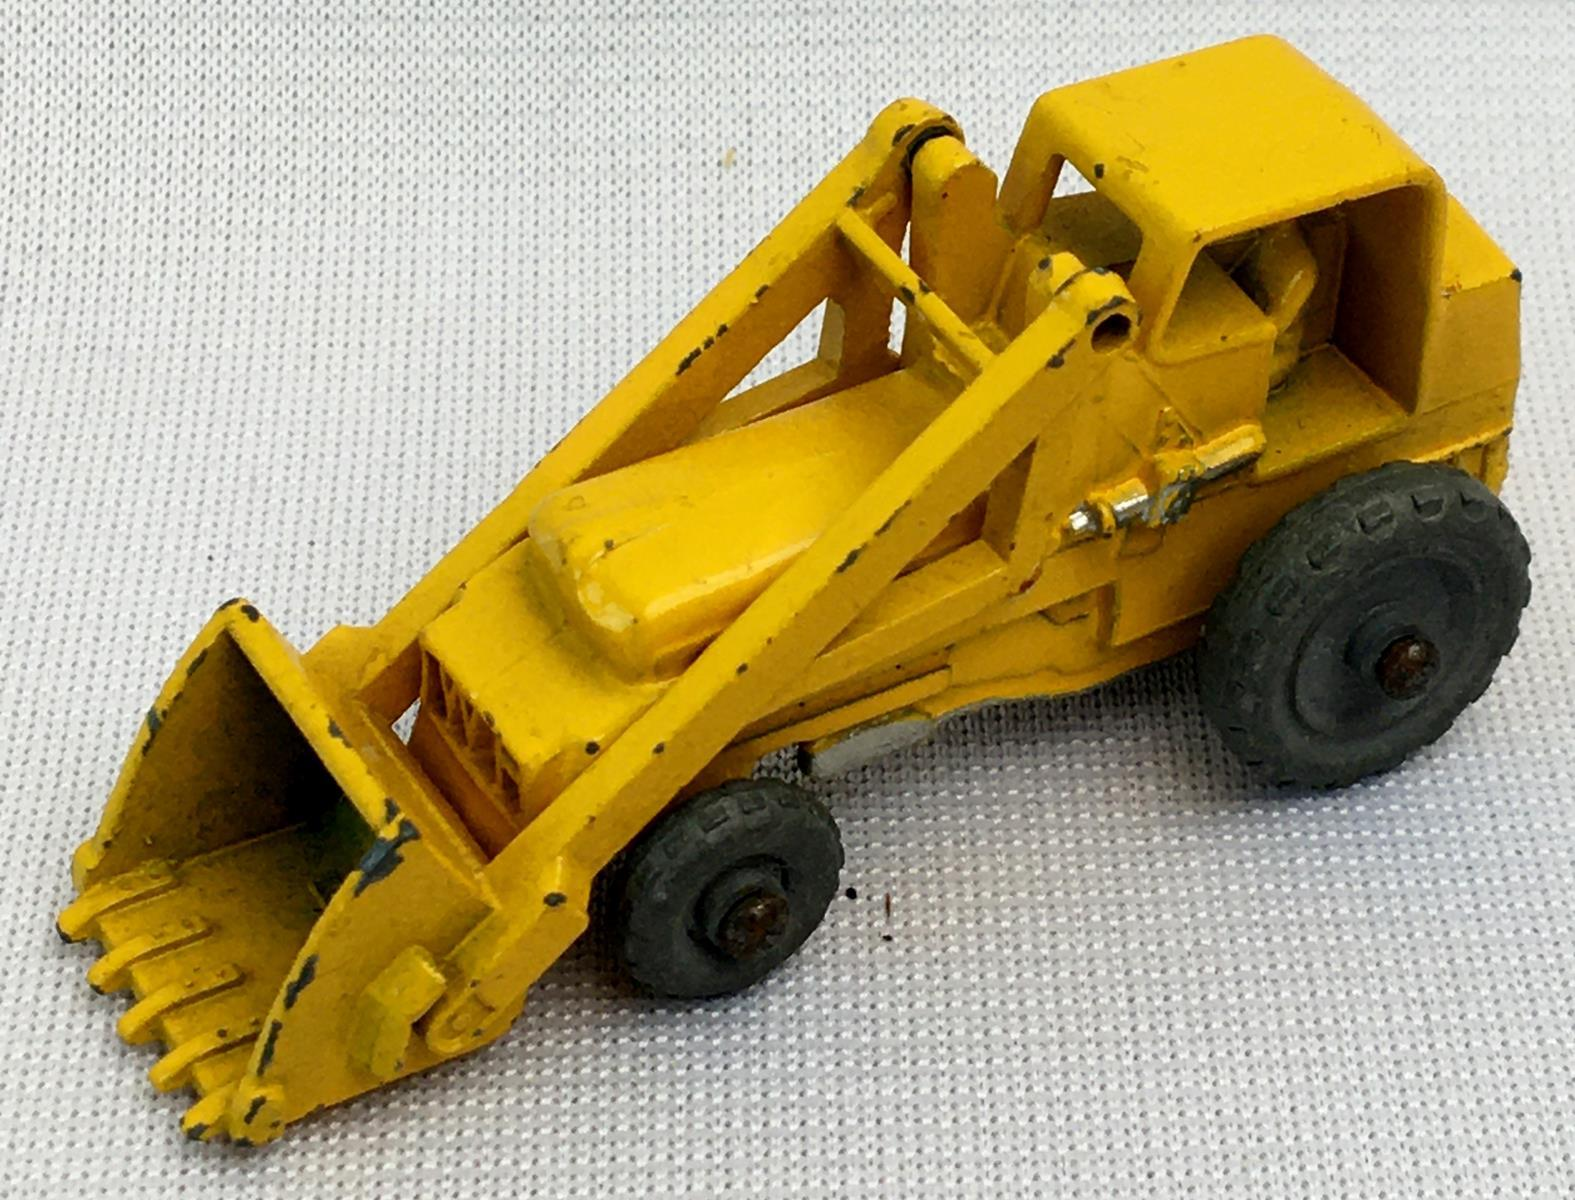 Vintage c.1960 Lesney Matchbox No. 24 Weatherill Hydraulic w/ Gray Wheels